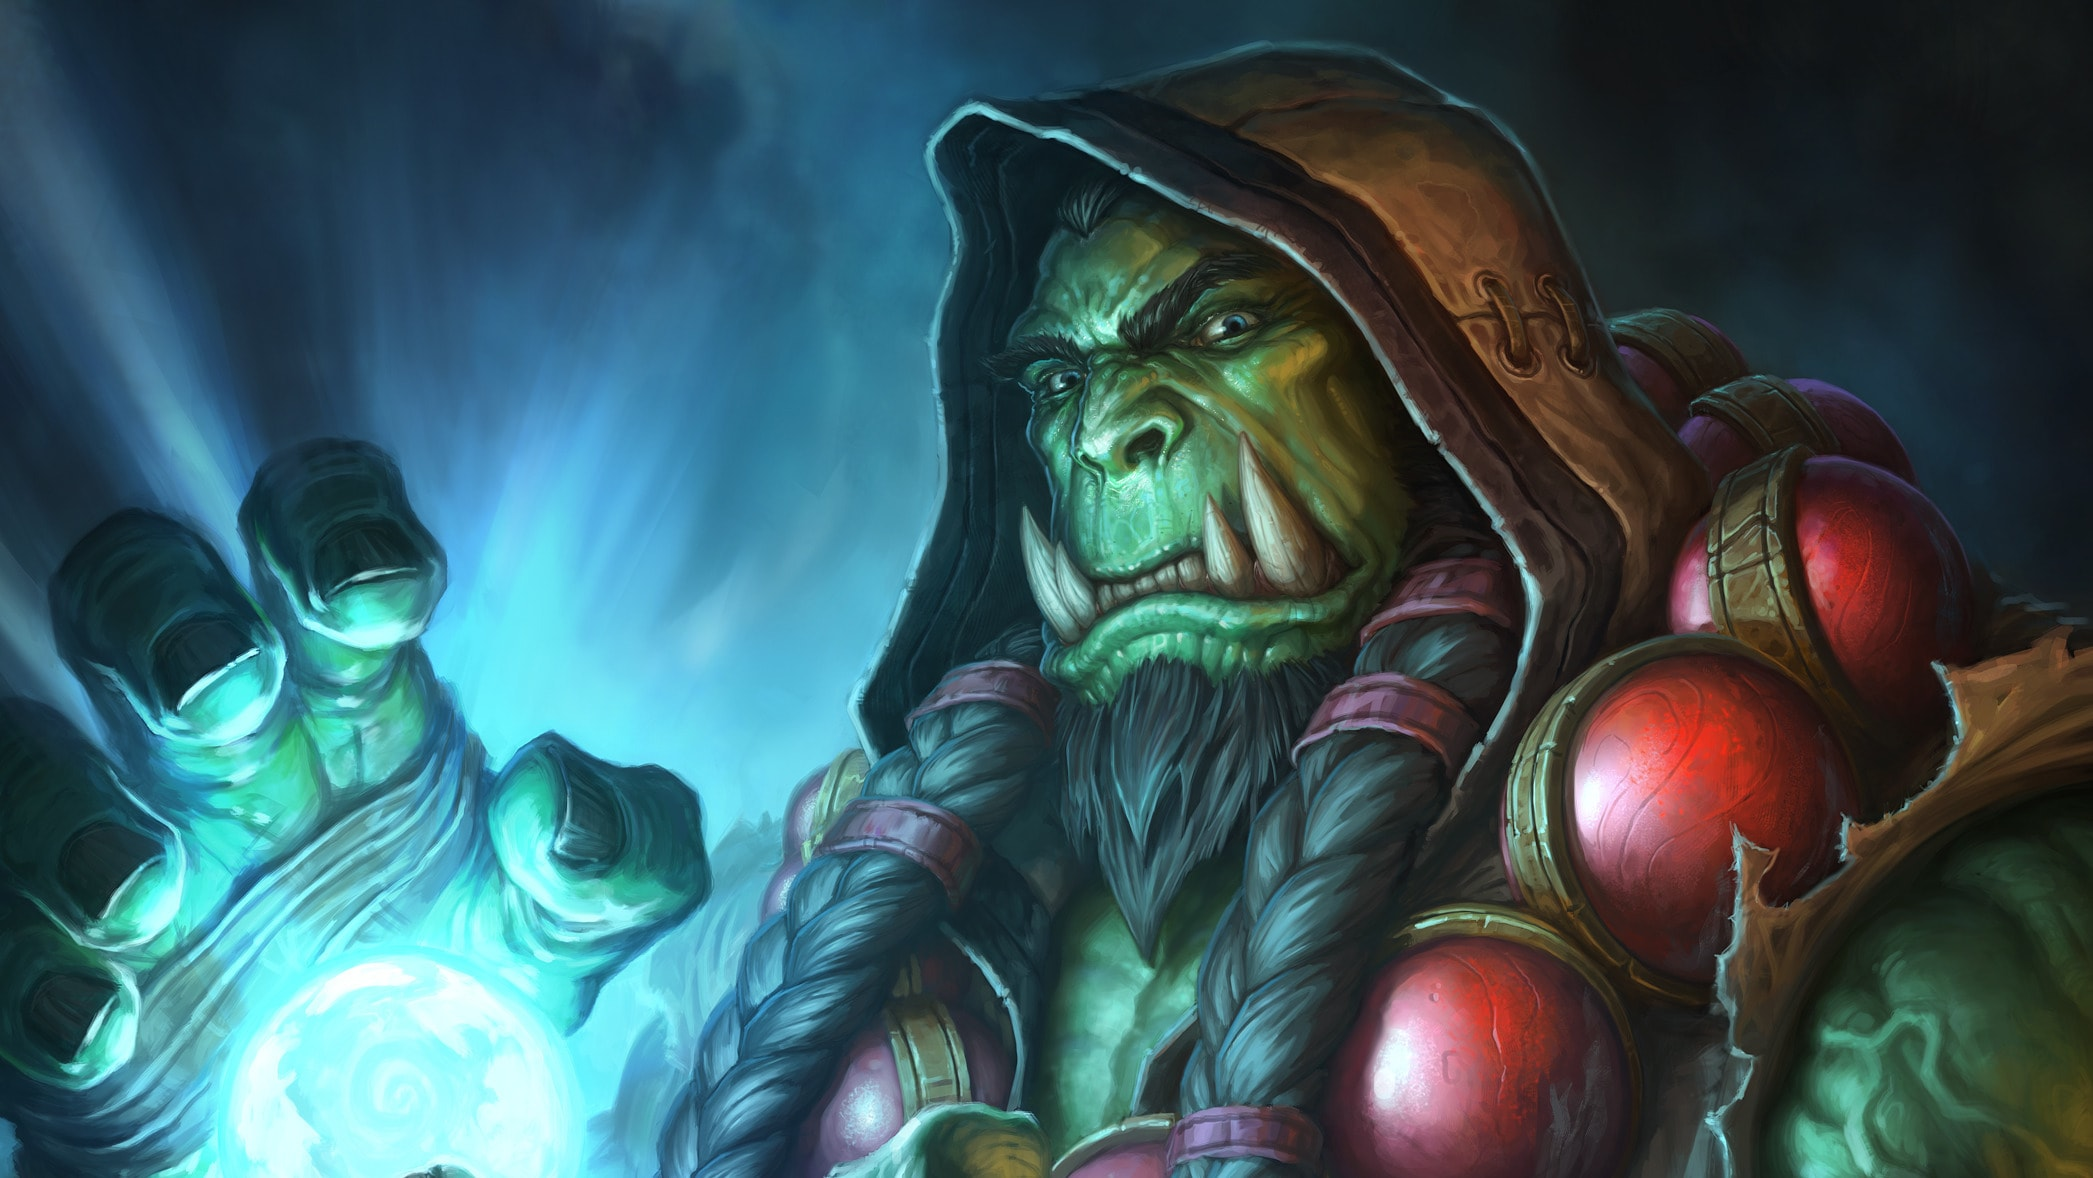 Hearthstone: Thrall Wallpapers hd